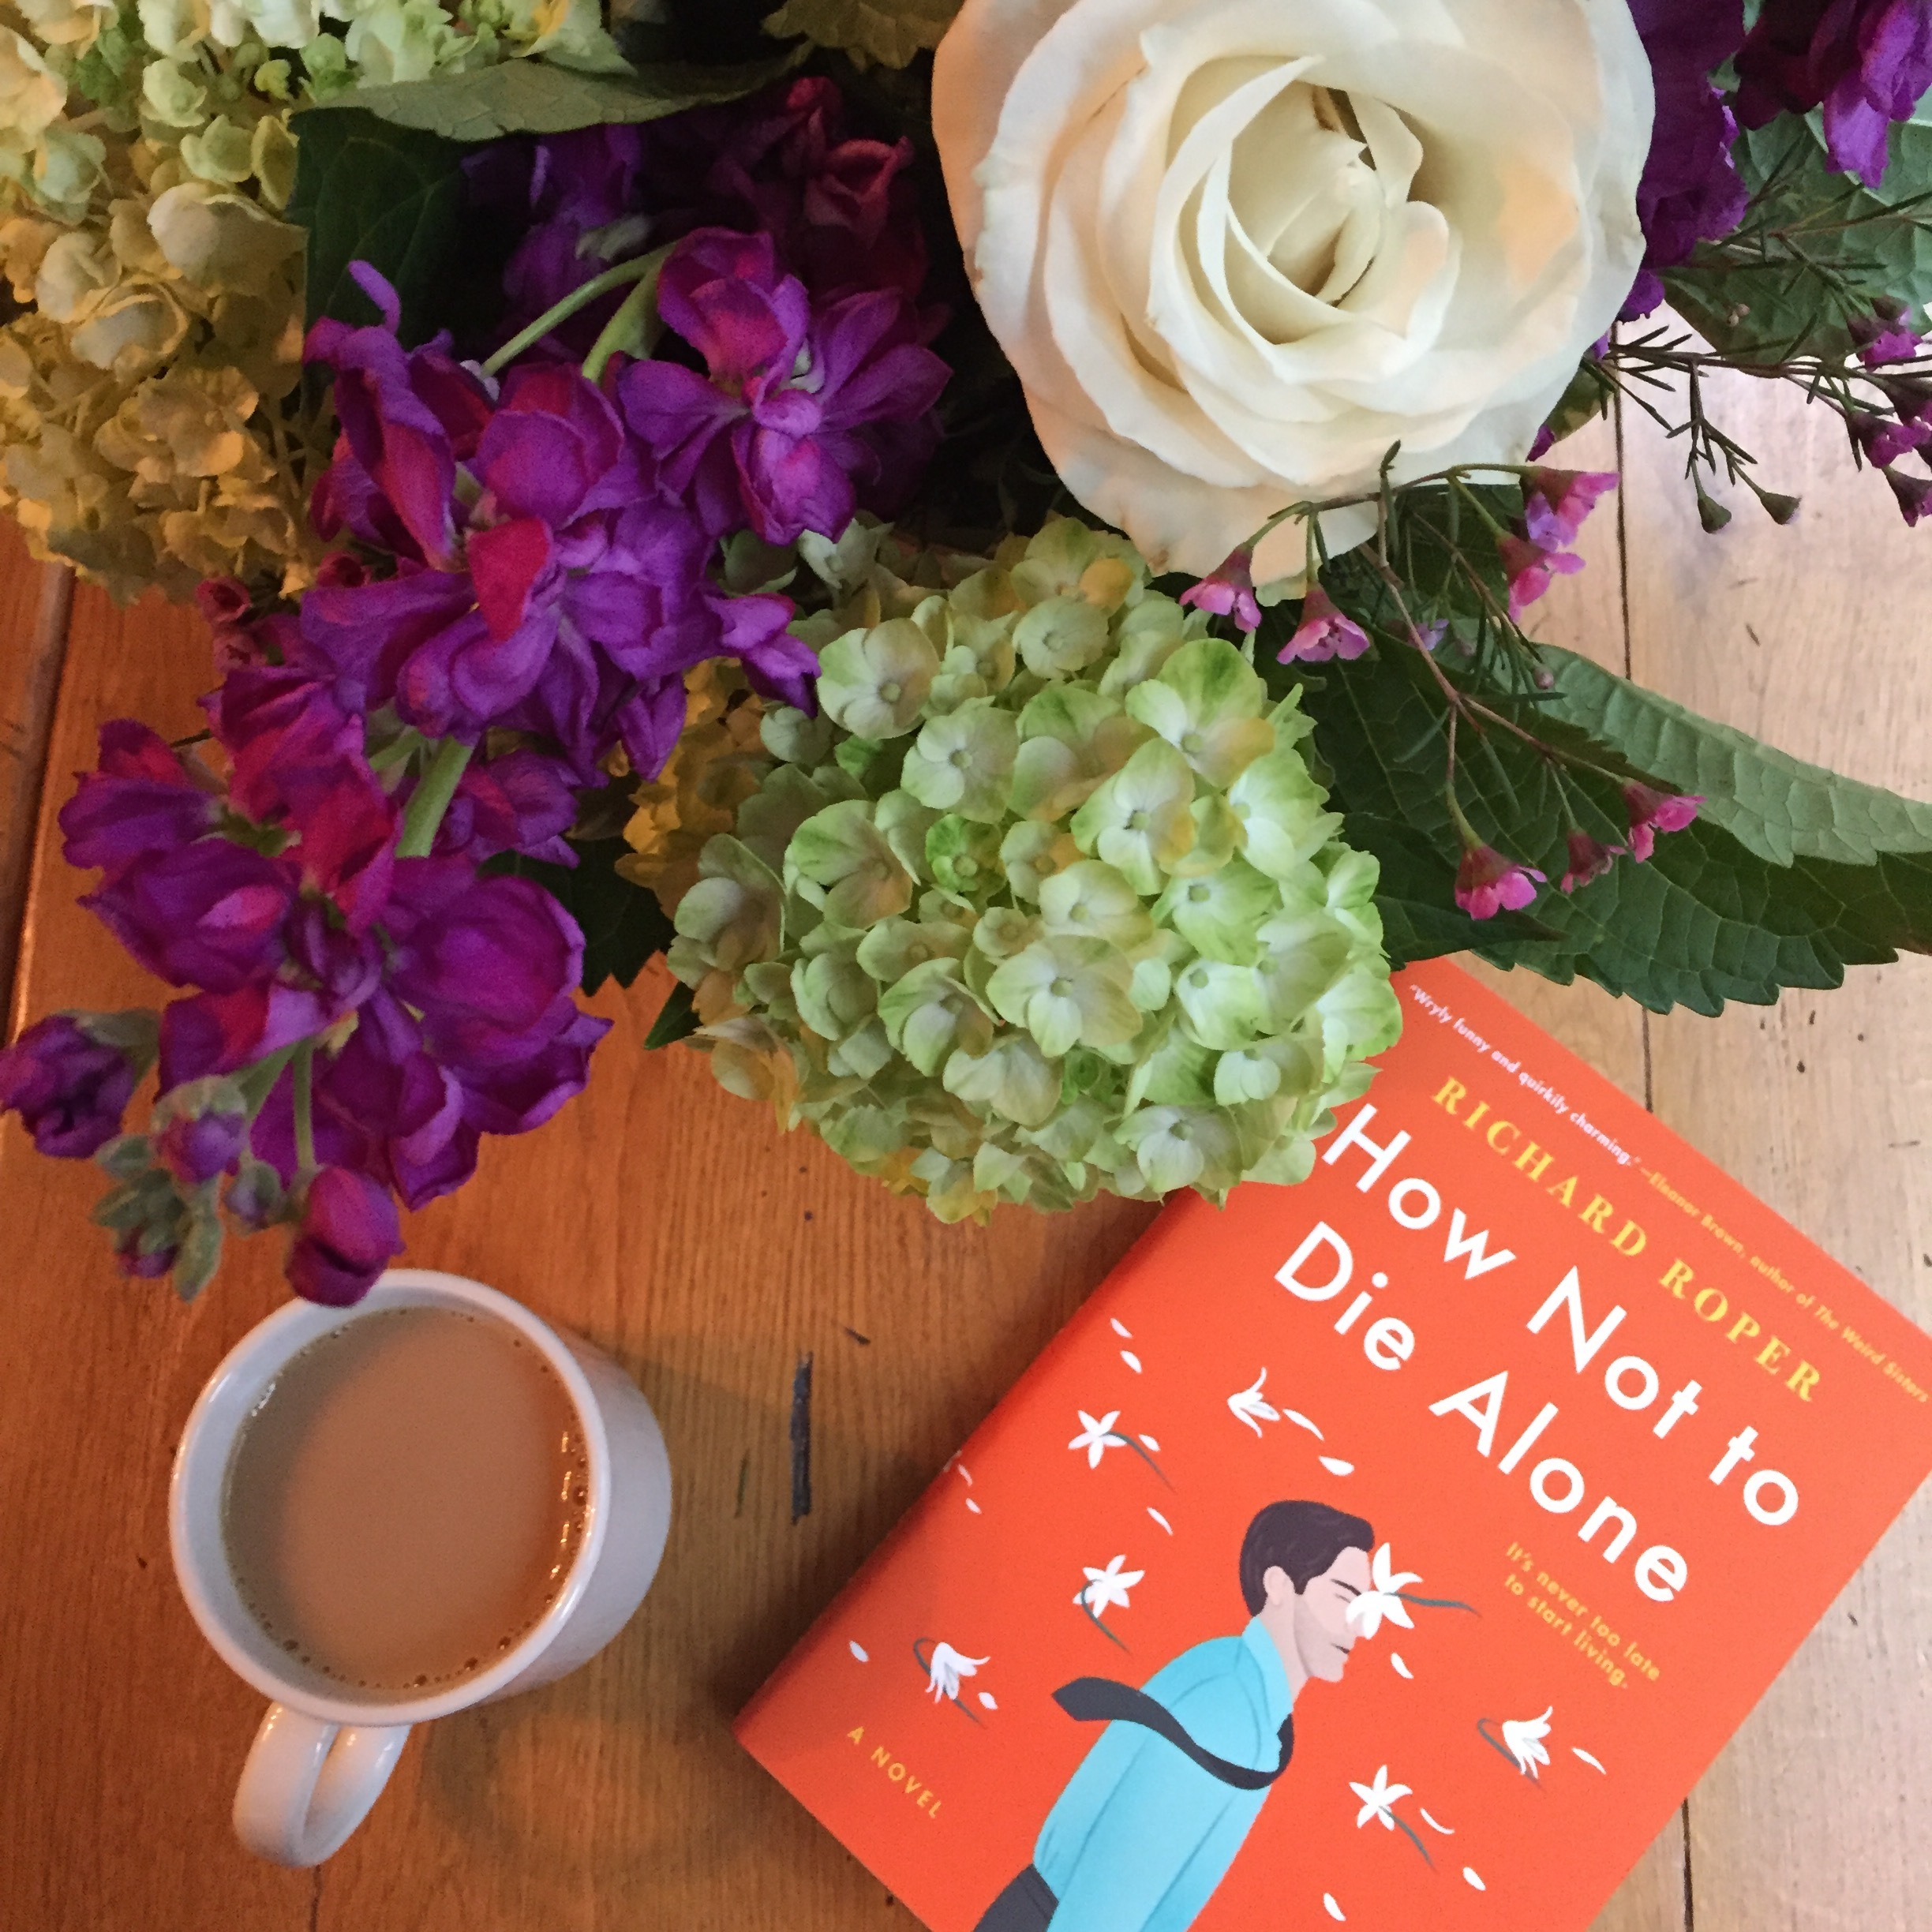 * Book Review for HOW NOT TO DIE ALONE by Richard Roper *